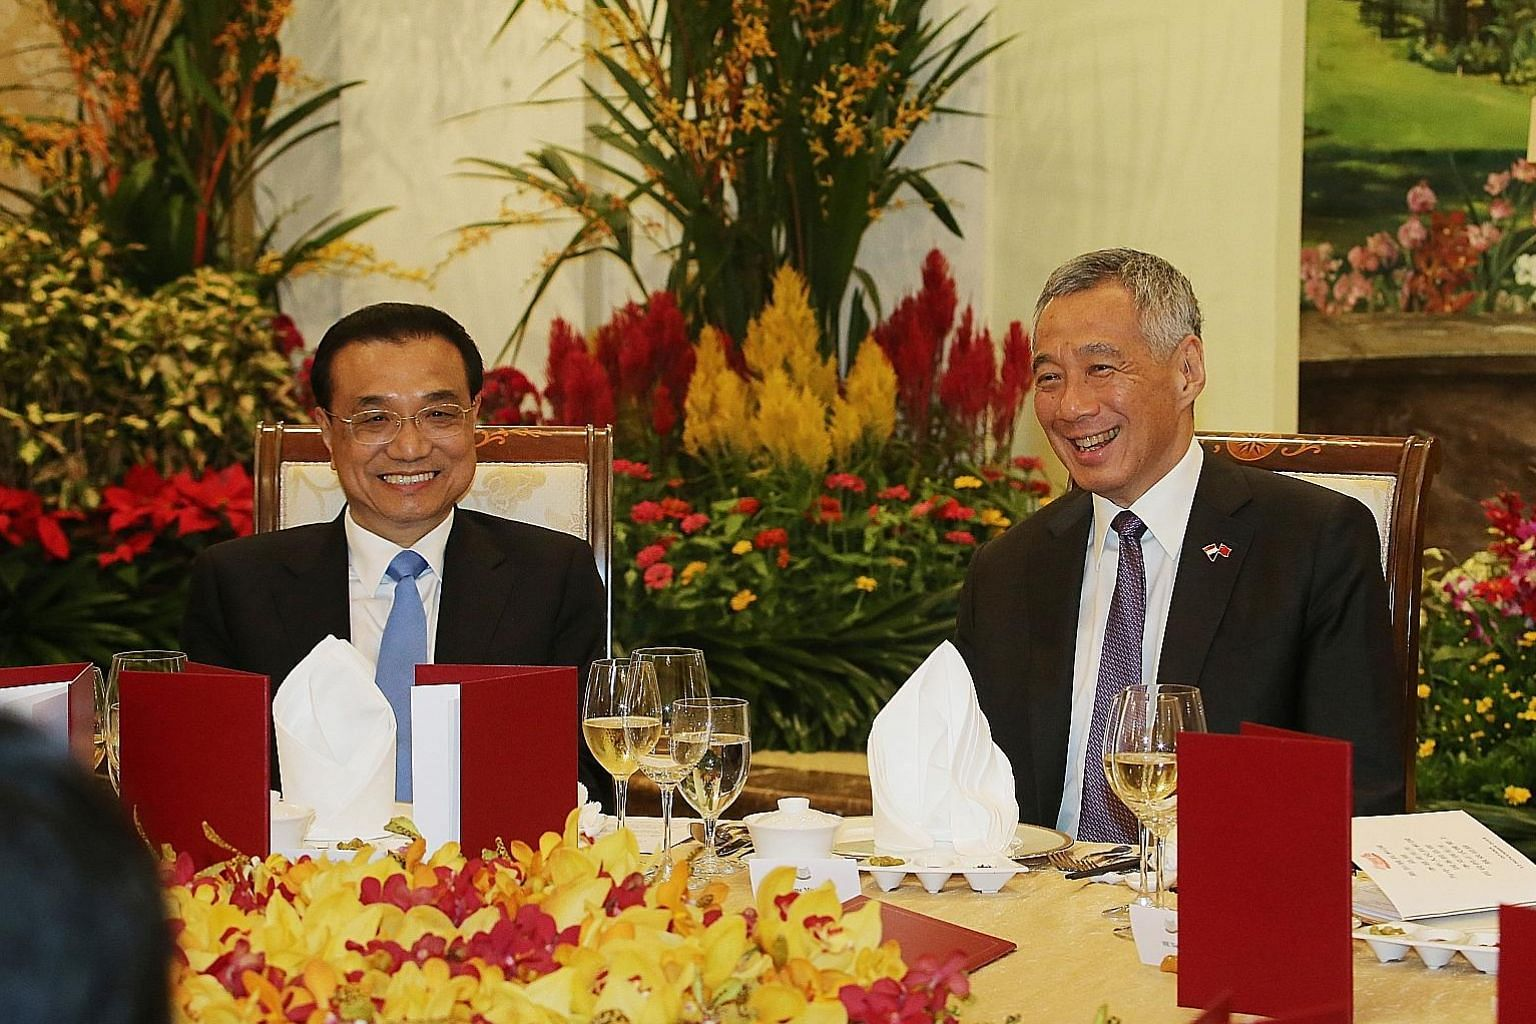 Prime Minister Lee Hsien Loong hosting Chinese Premier Li Keqiang to dinner last night. The upgraded free trade agreement will give Singapore firms stronger protection for investments. PM Lee welcoming Premier Li at the Istana yesterday during the Ch